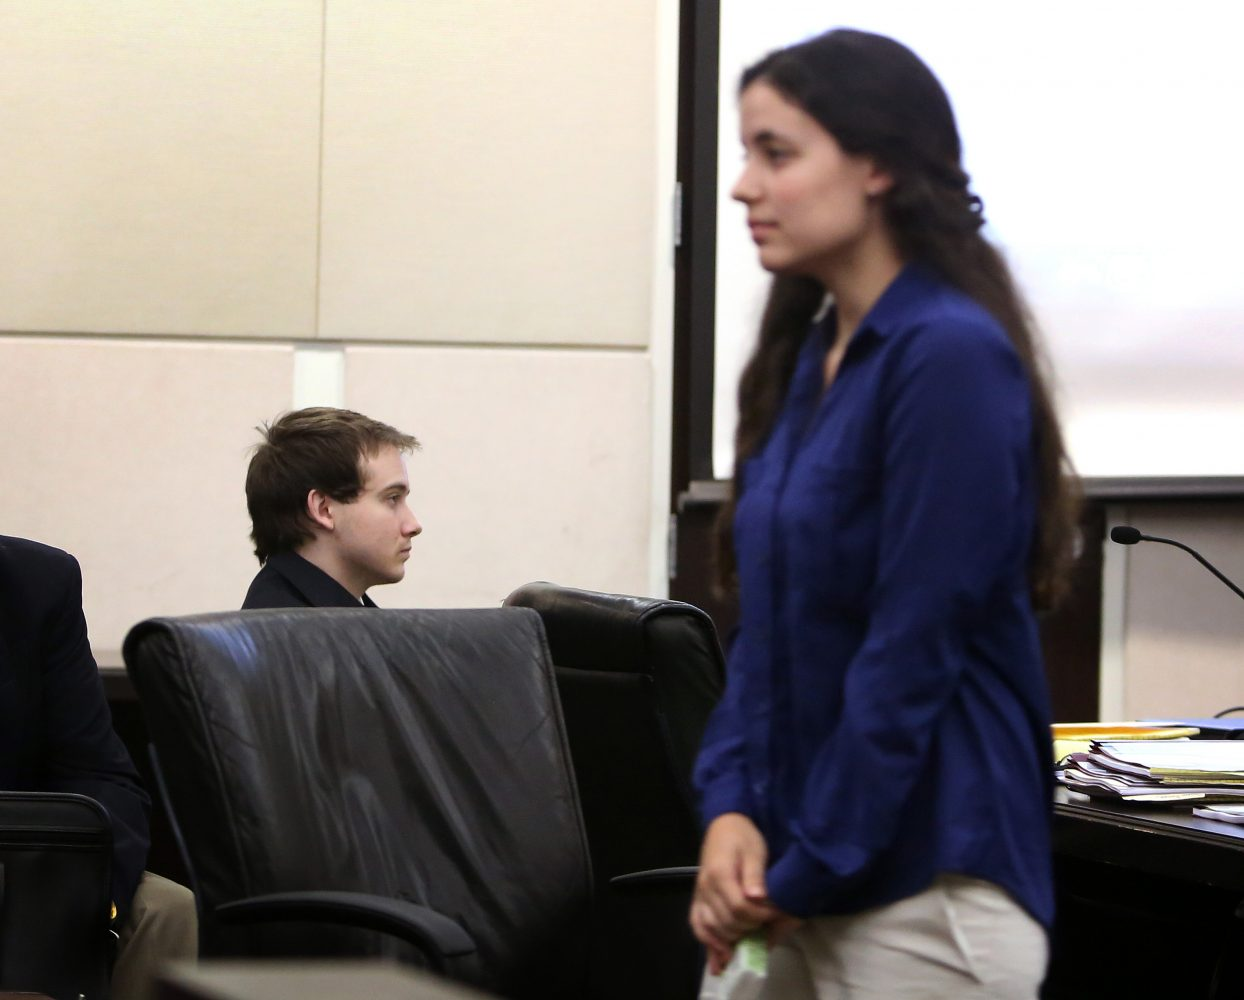 Erika Friman, the former girlfriend of Pedro Bravo, at left, leaves courtroom 1B of the Alachua County Criminal Justice Center for the day following her testimony Tuesday, August 5, 2014.  Bravo is accused of killing his friend and Friman's new boyfriend Christian Aguilar.  (Doug Finger/The Gainesville Sun/Pool)